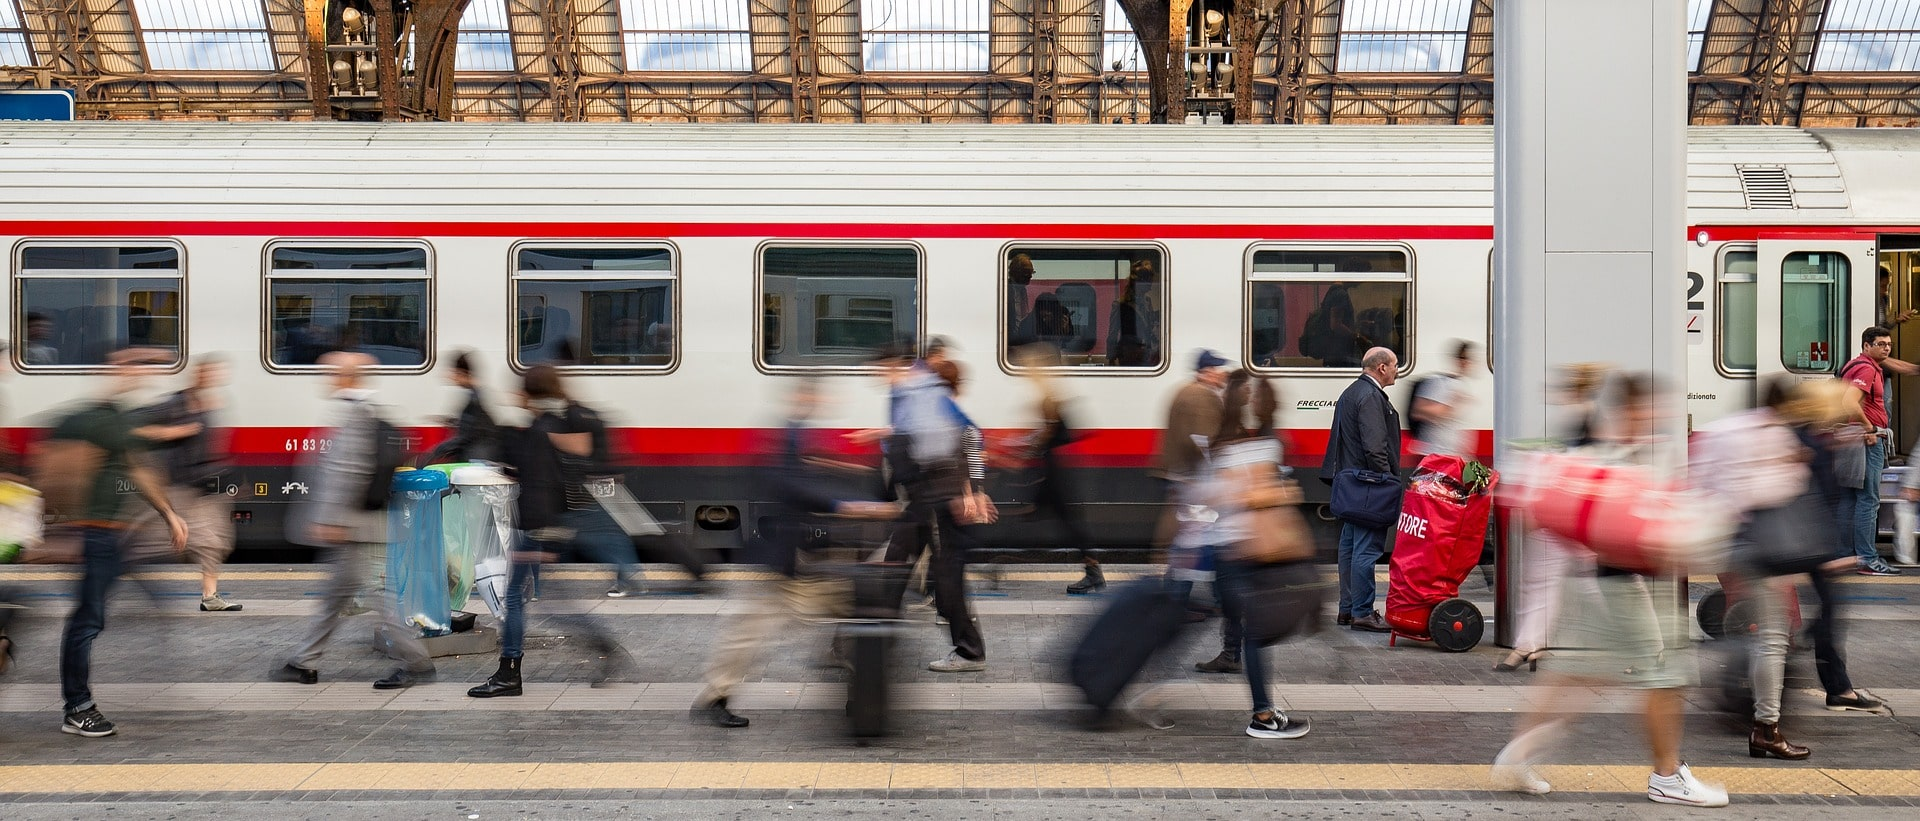 A frequently asked question about Italy is how to get around—fortunately, the country provides a lot of transportation options